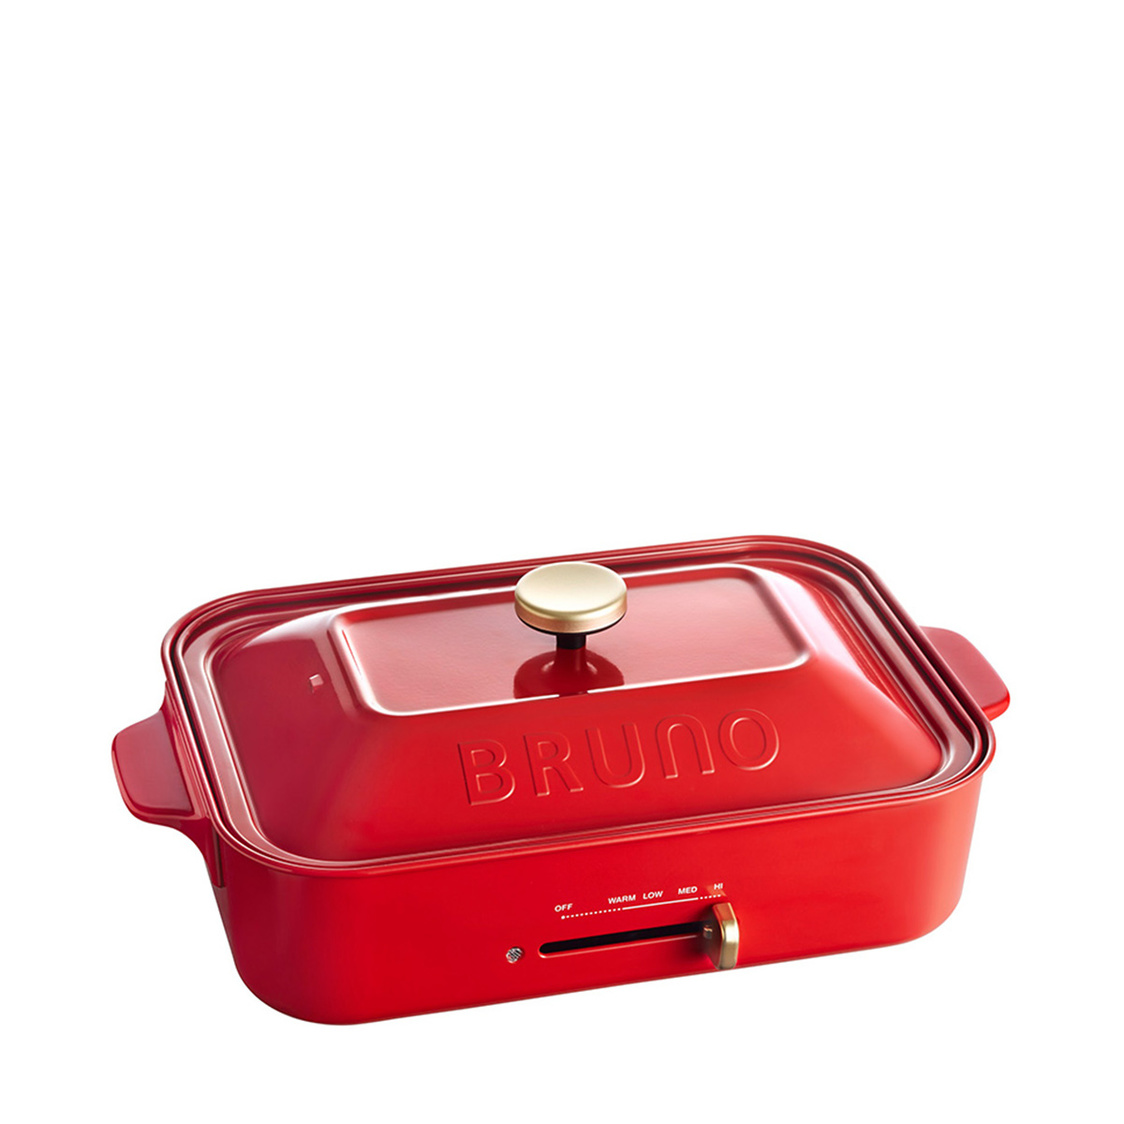 Compact Hotplate Red